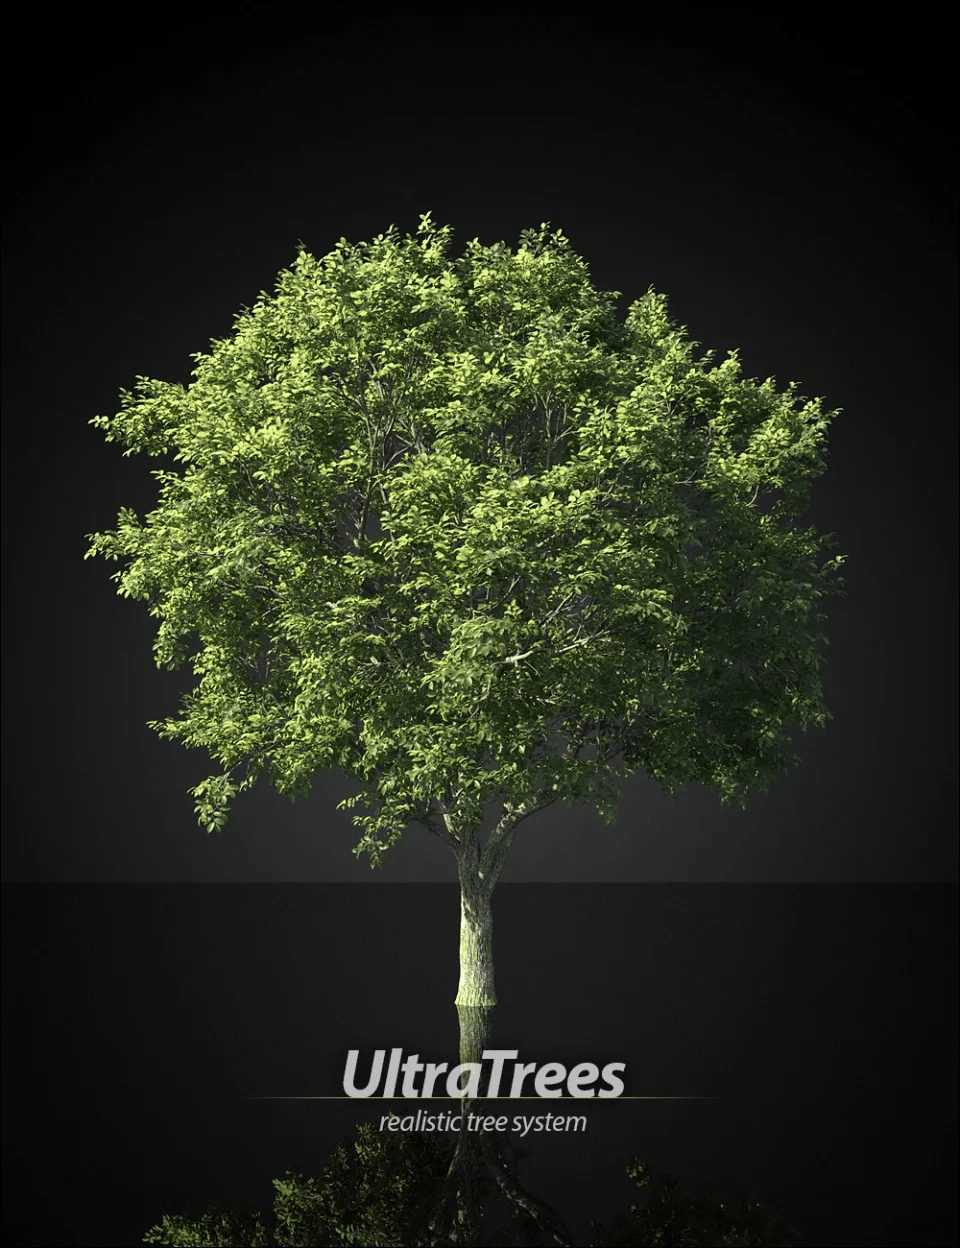 UltraTrees - Realistic Tree System